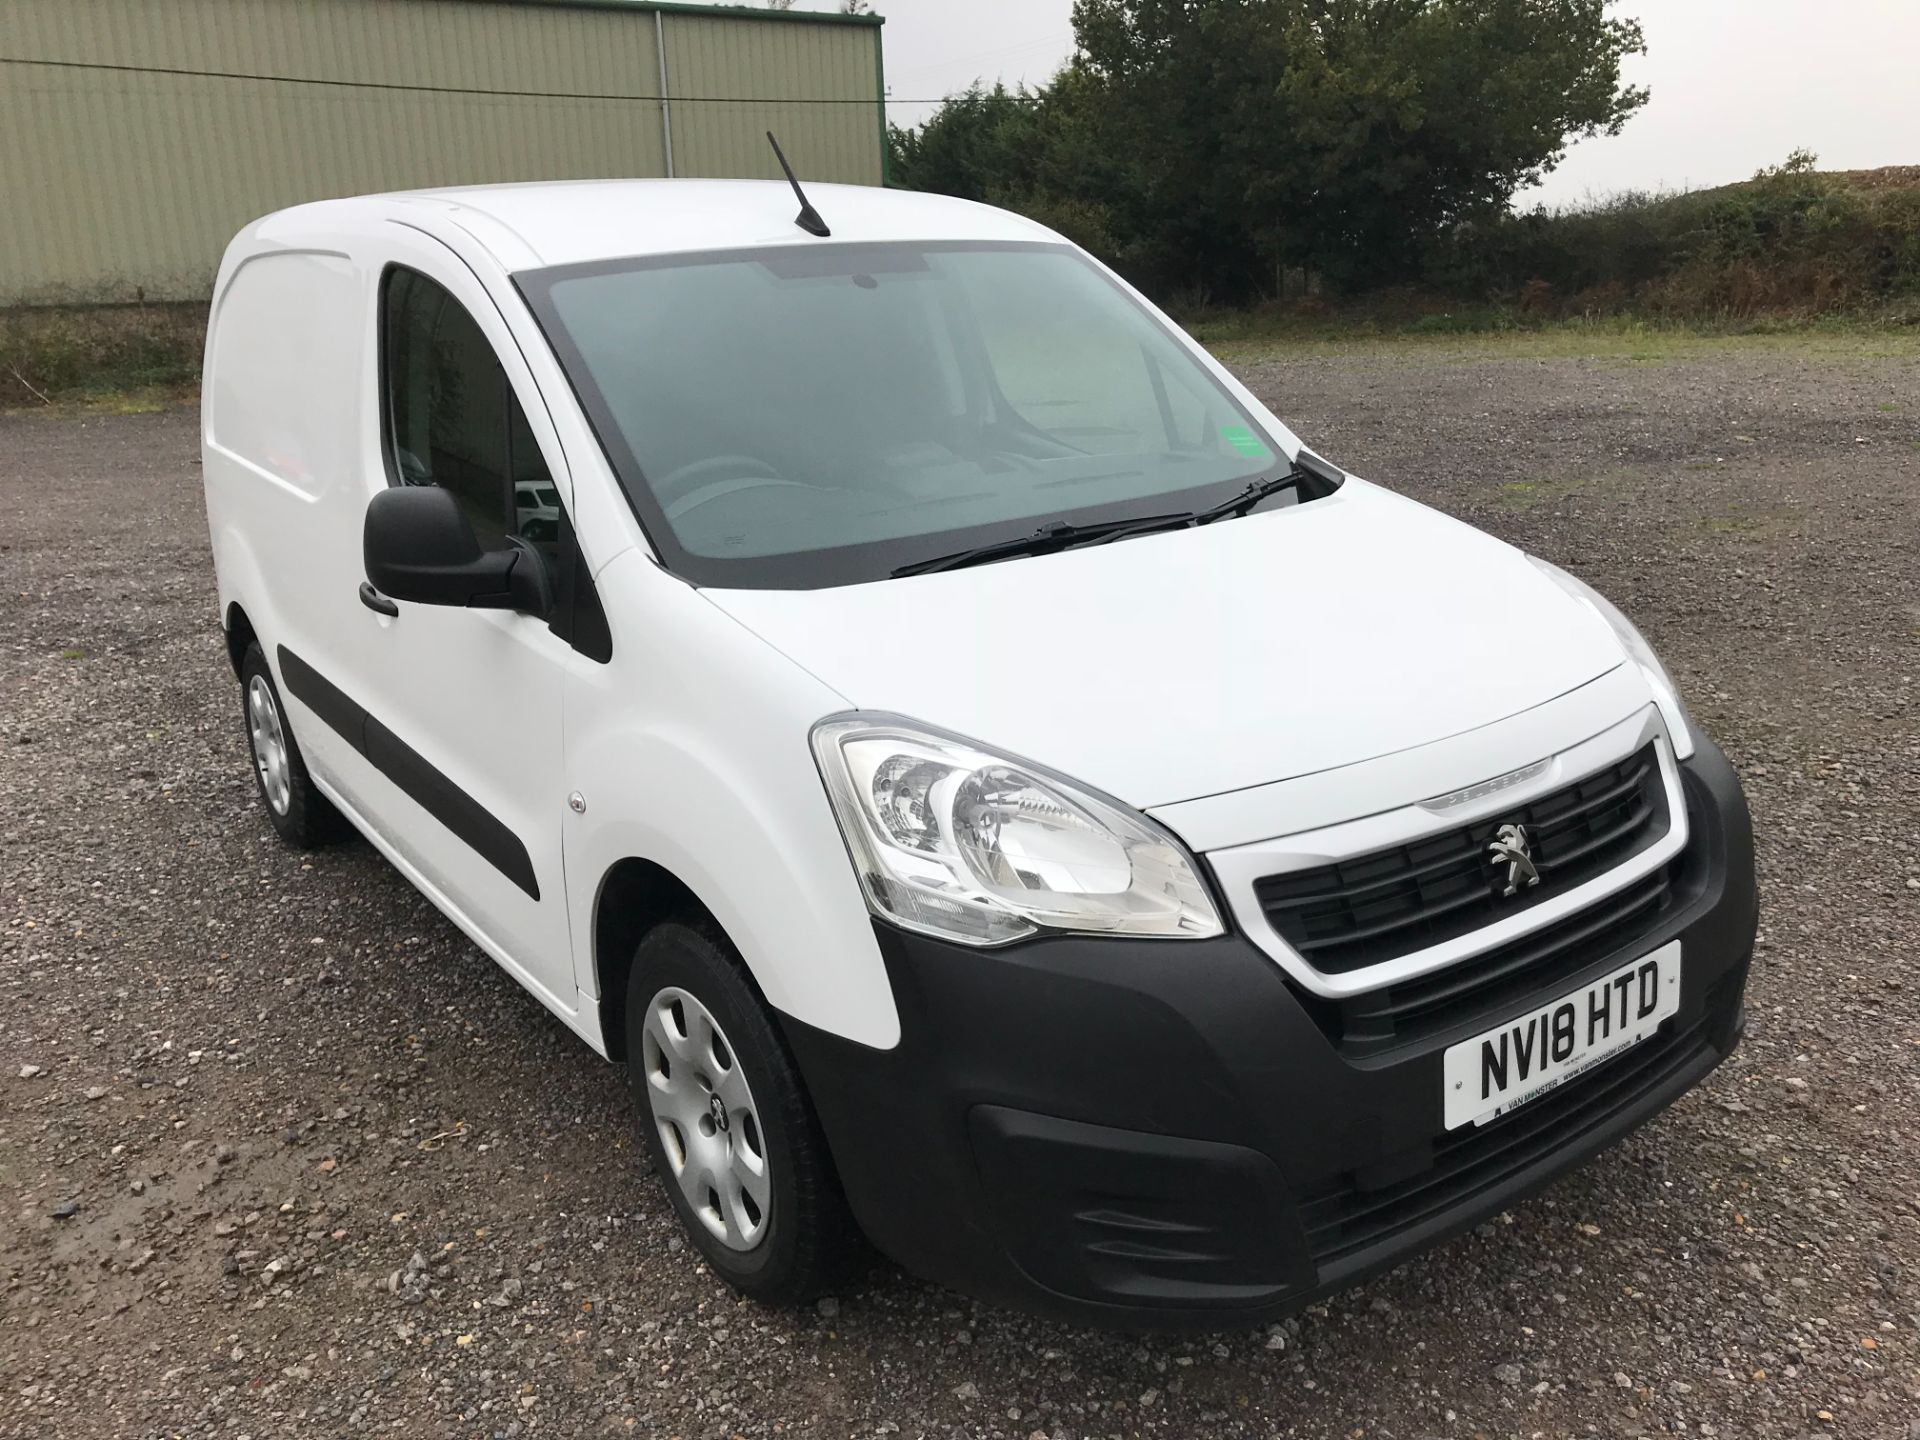 2018 Peugeot Partner 850 1.6 Bluehdi 100 Professional Van [Non Ss] *Restricted to 70 MPH* Euro 6 (NV18HTD) Image 1